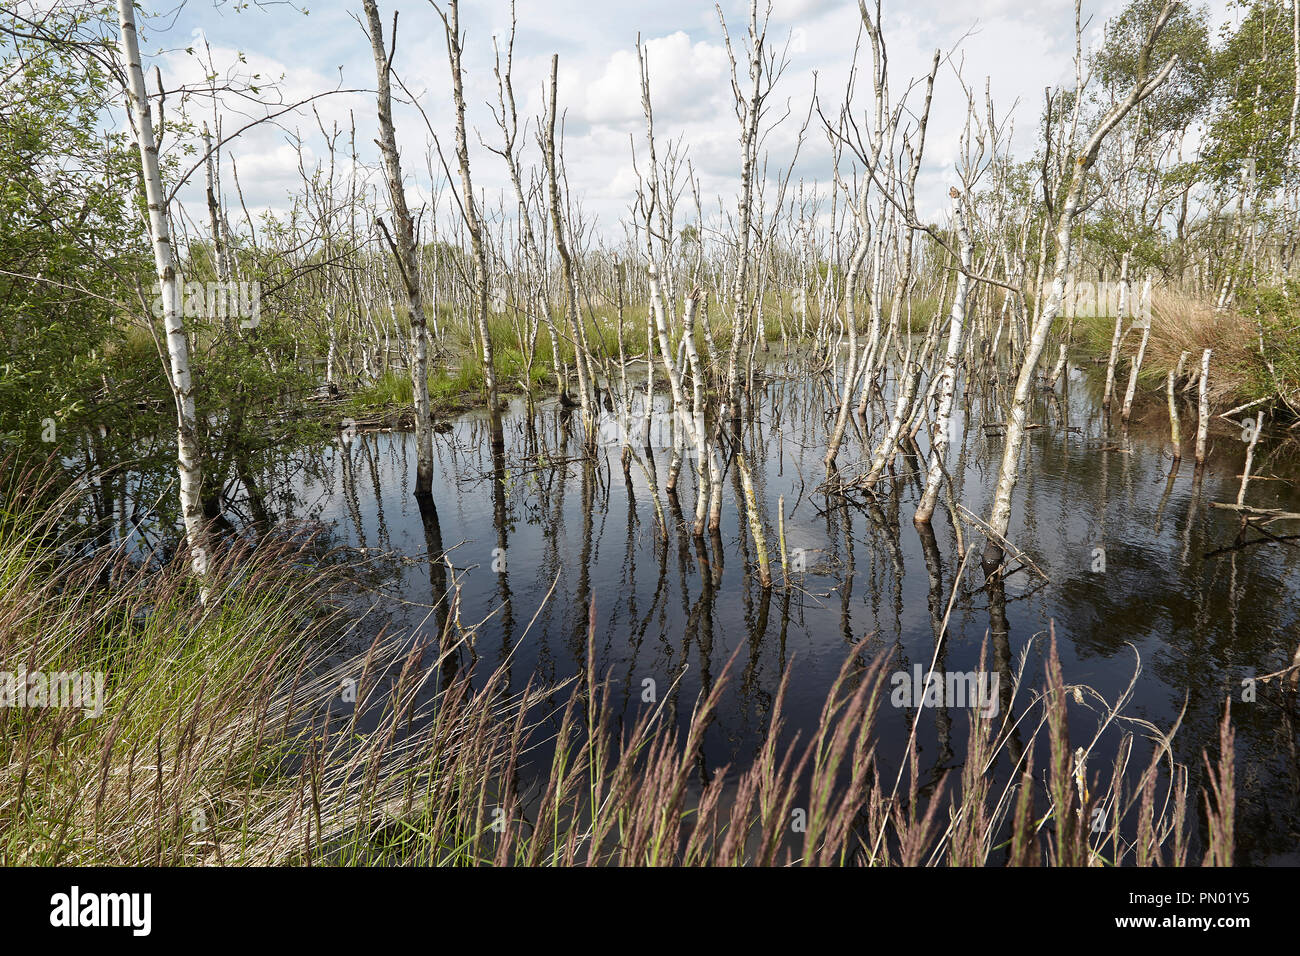 Dead silver birch trees, Common cottongrass, Eriophorum angustifolium, and Sphagnum bog Crowle Moor nature reserve one of the richest lowland peat veg - Stock Image